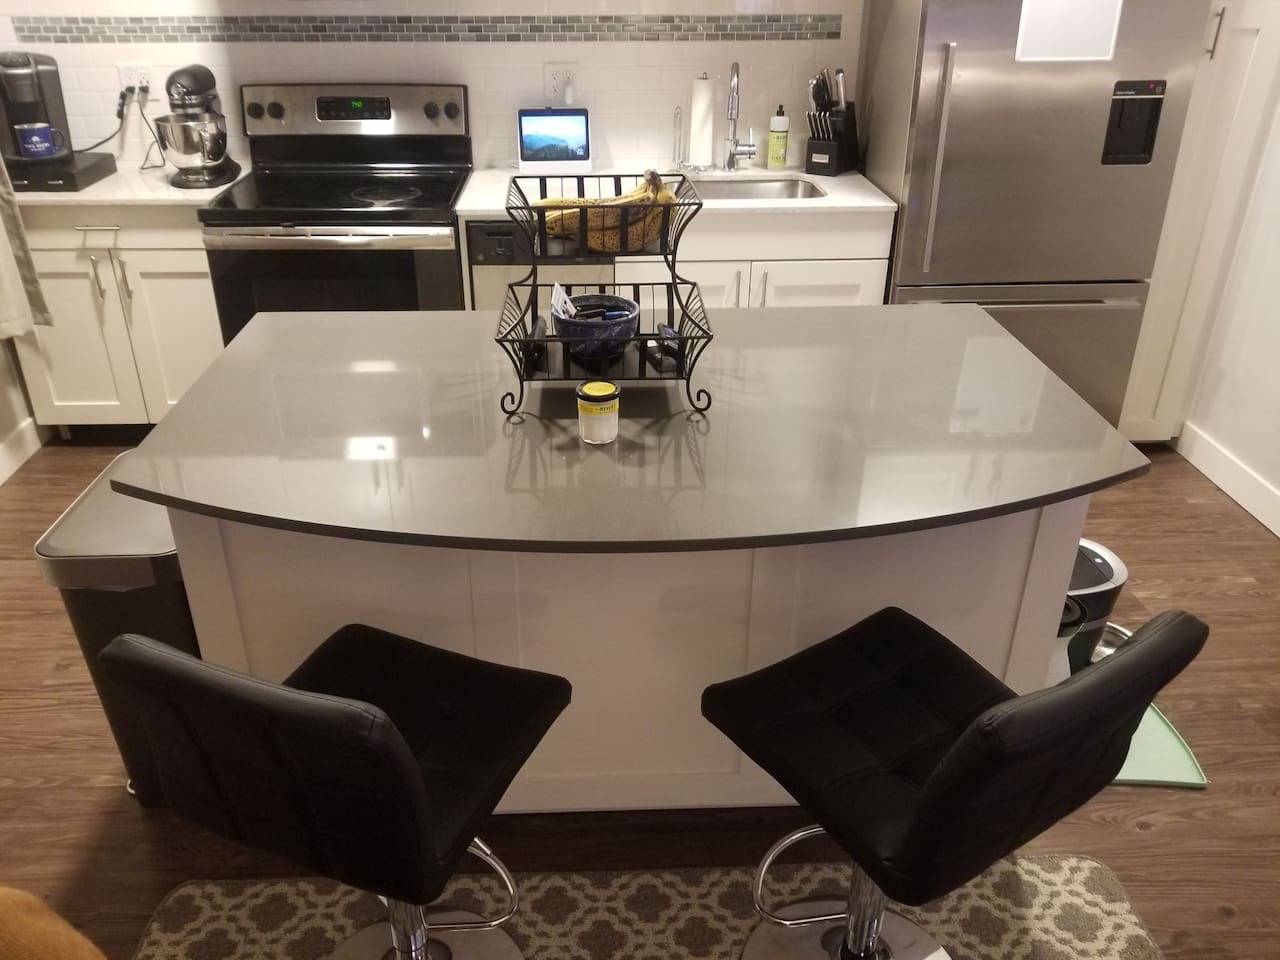 Recently renovated high end kitchen.  Full access to all appliances